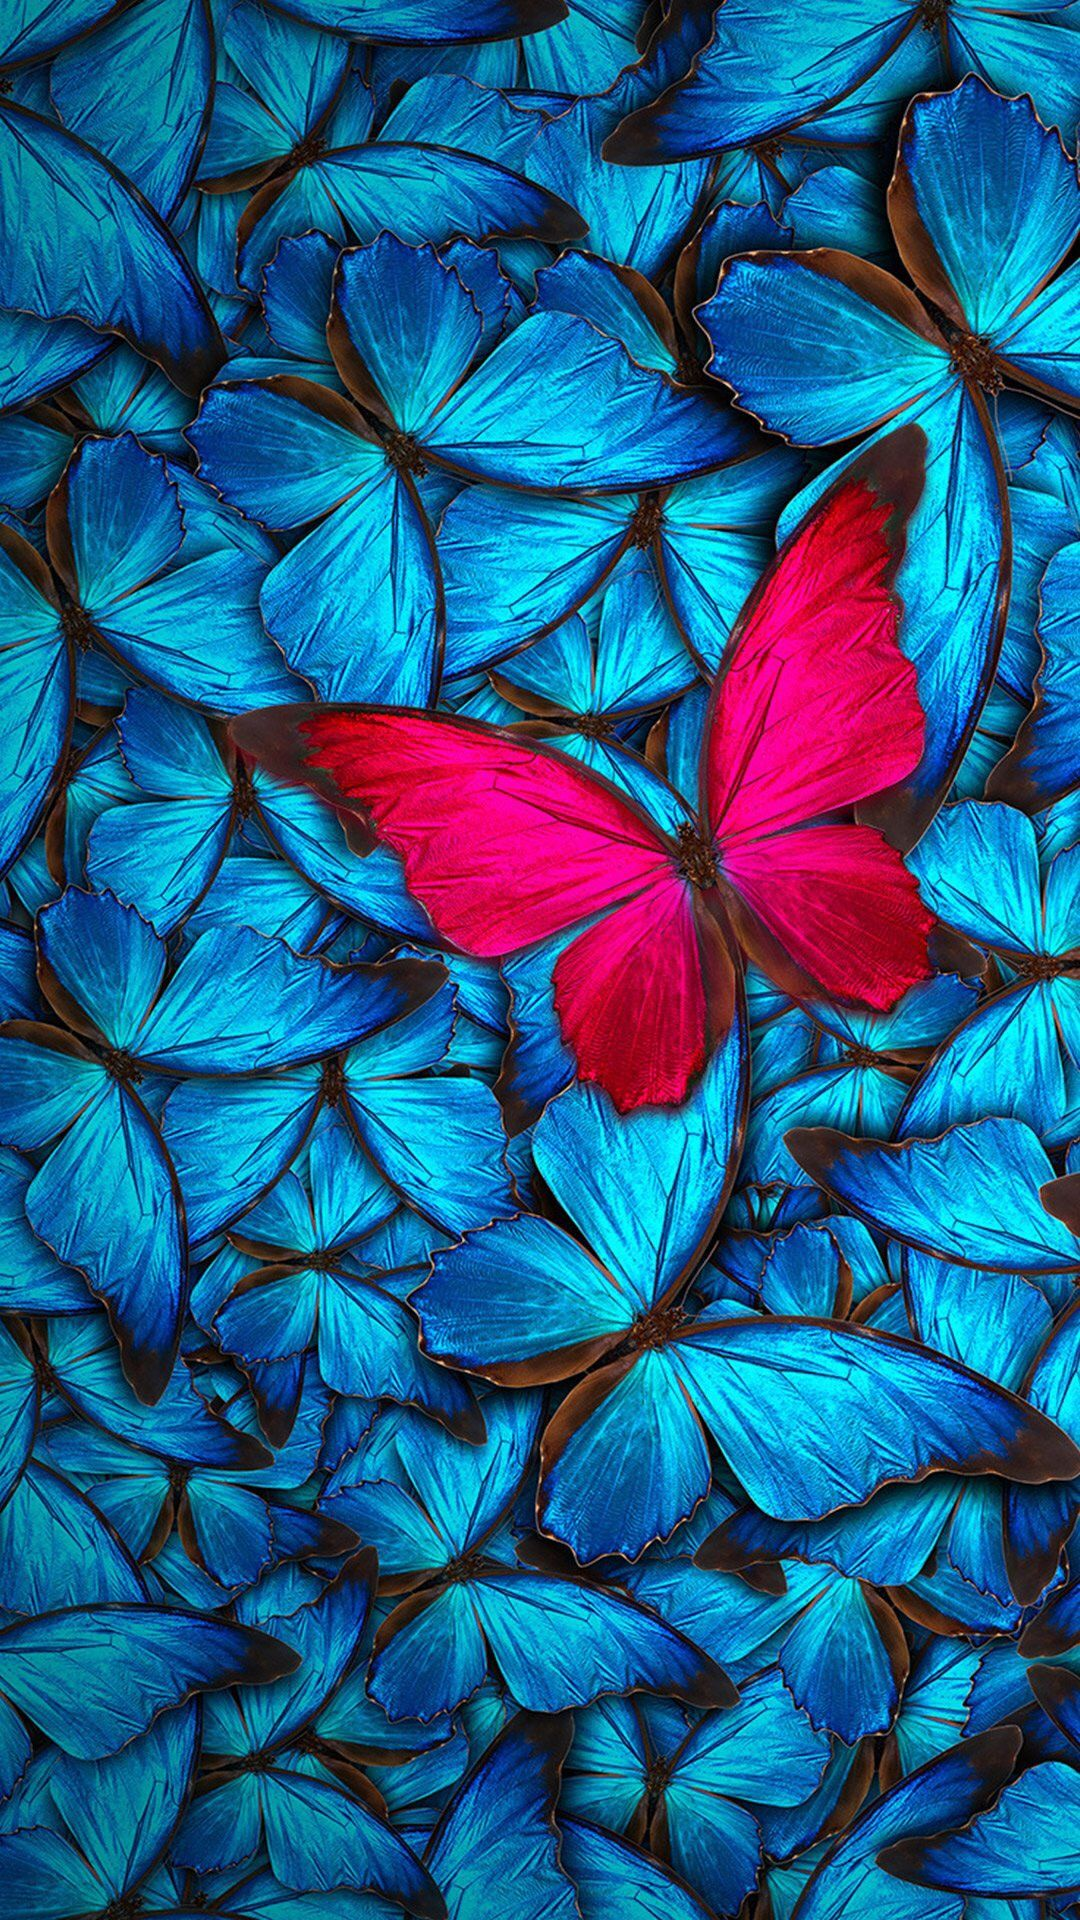 Pin by Kim Astall on Acrylics Butterfly wallpaper, Cute